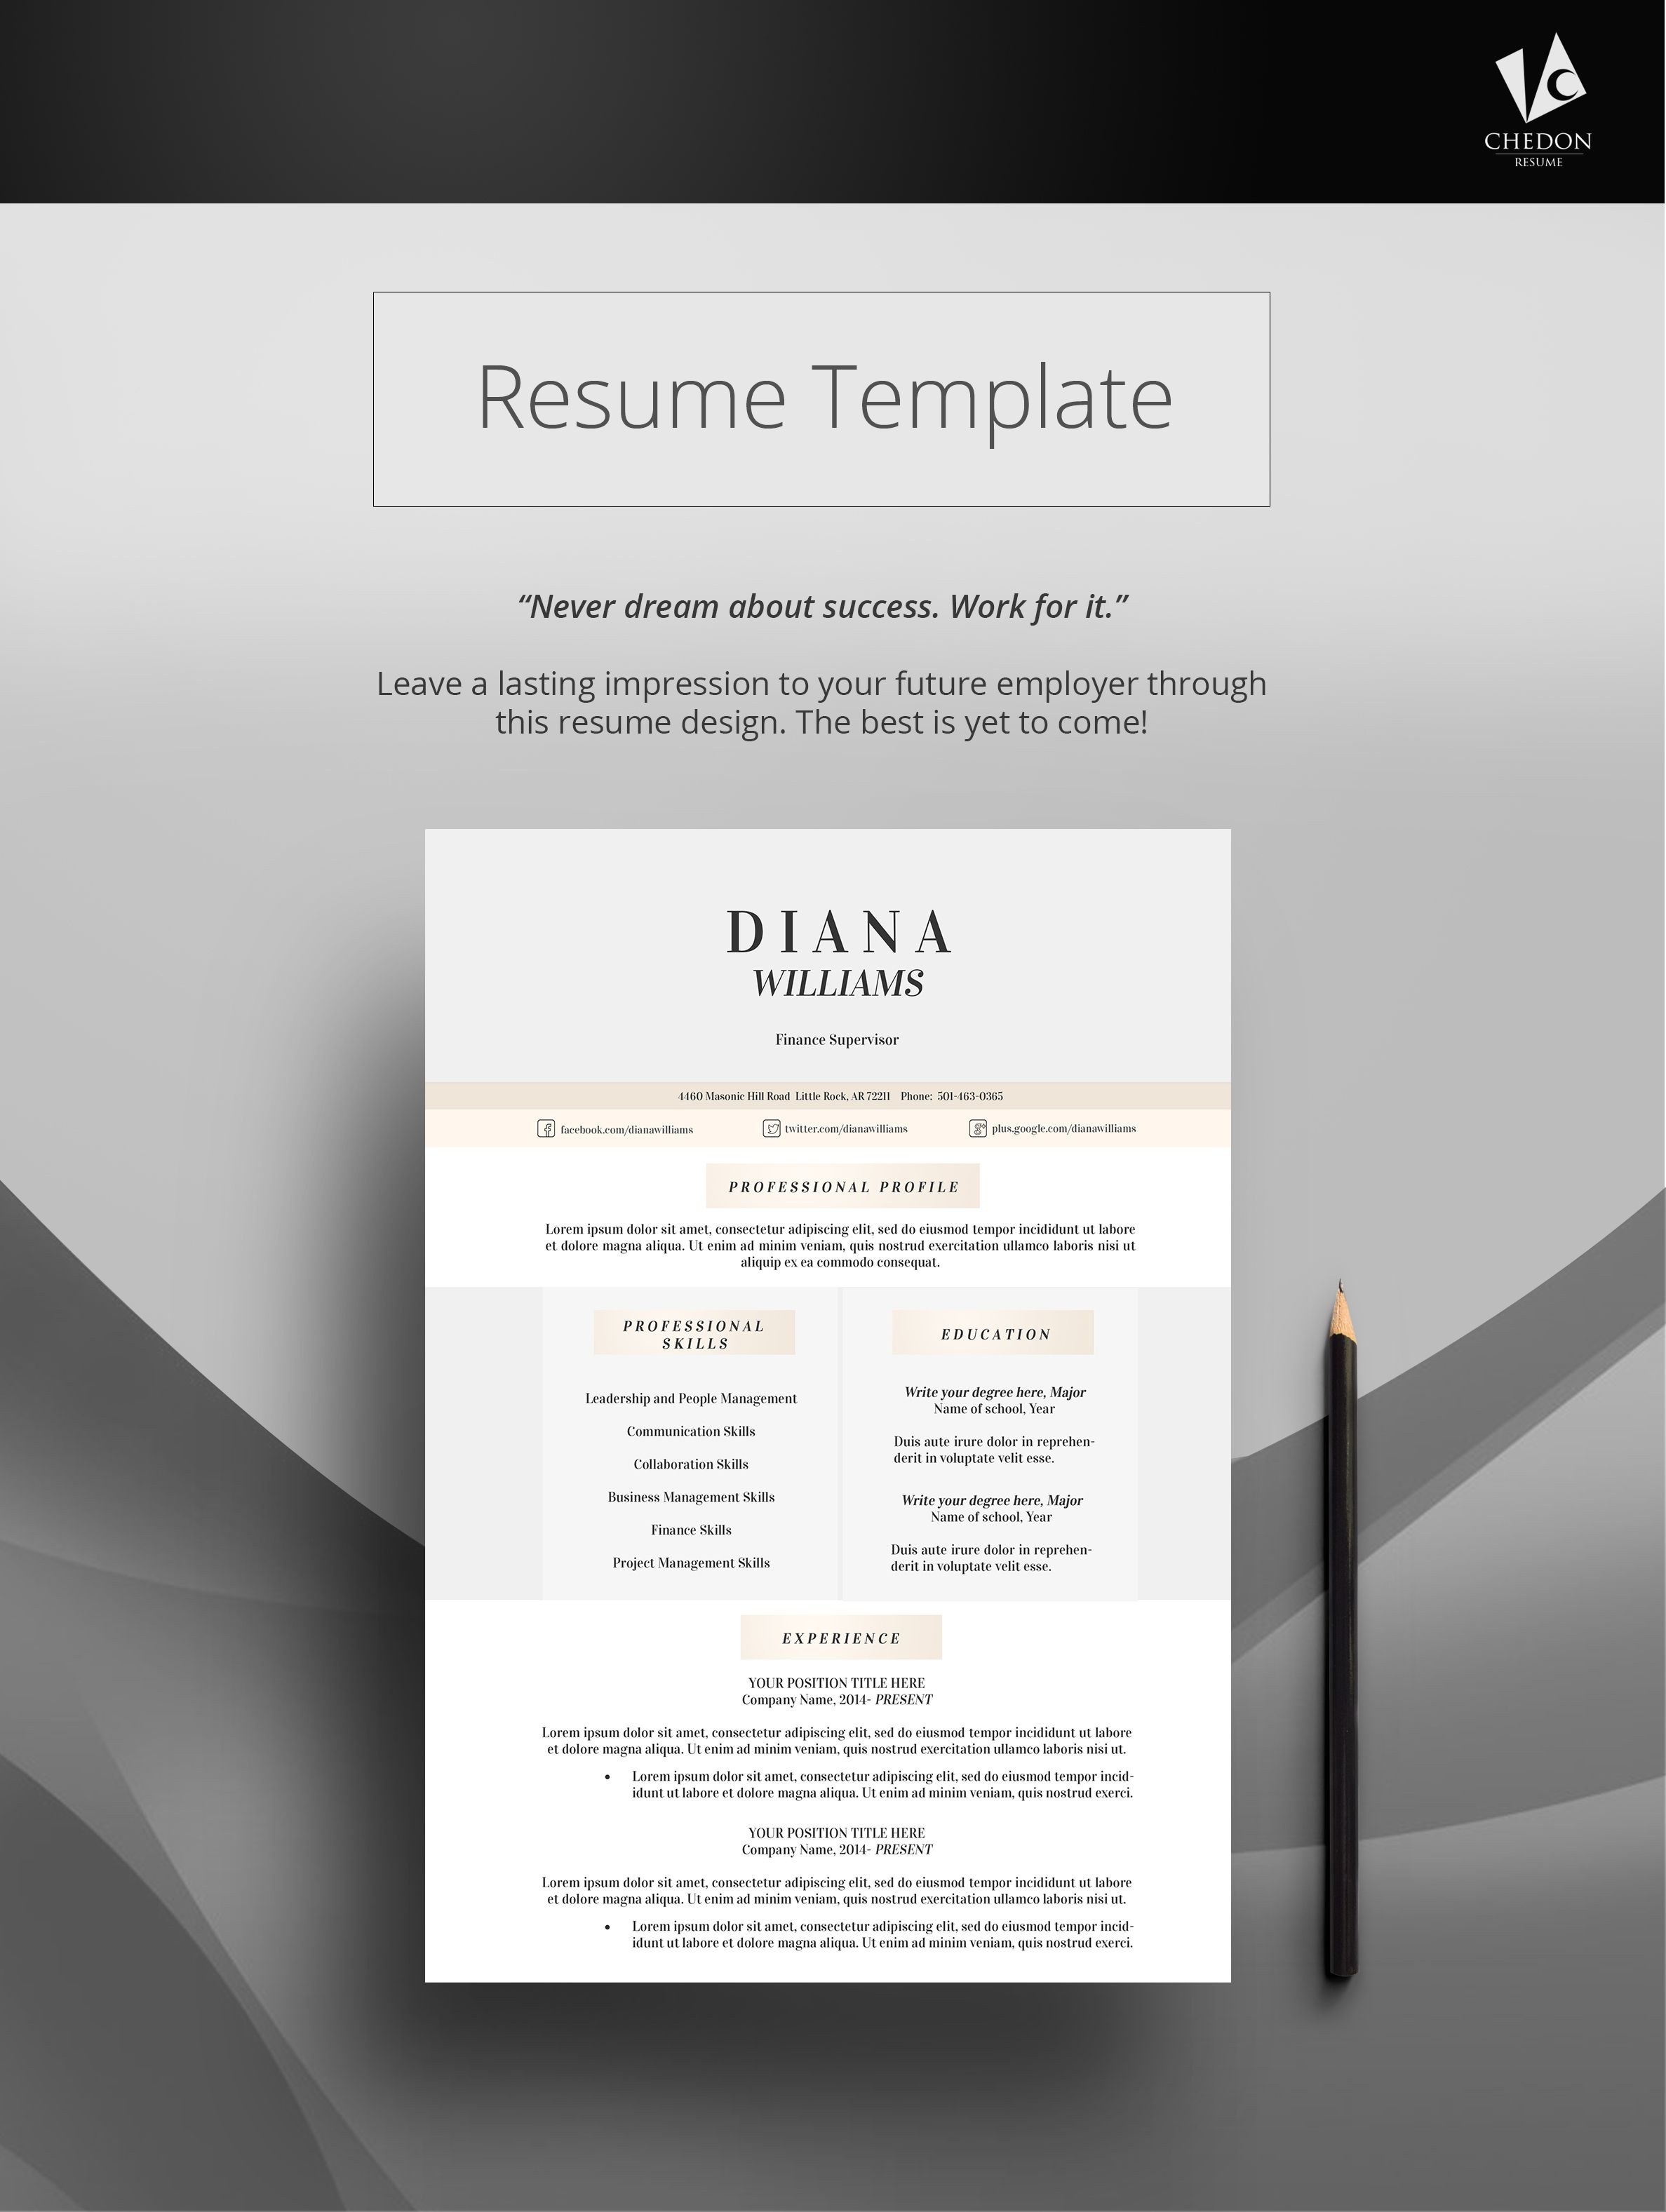 diana resume diana captures the classy yet simple resume template design